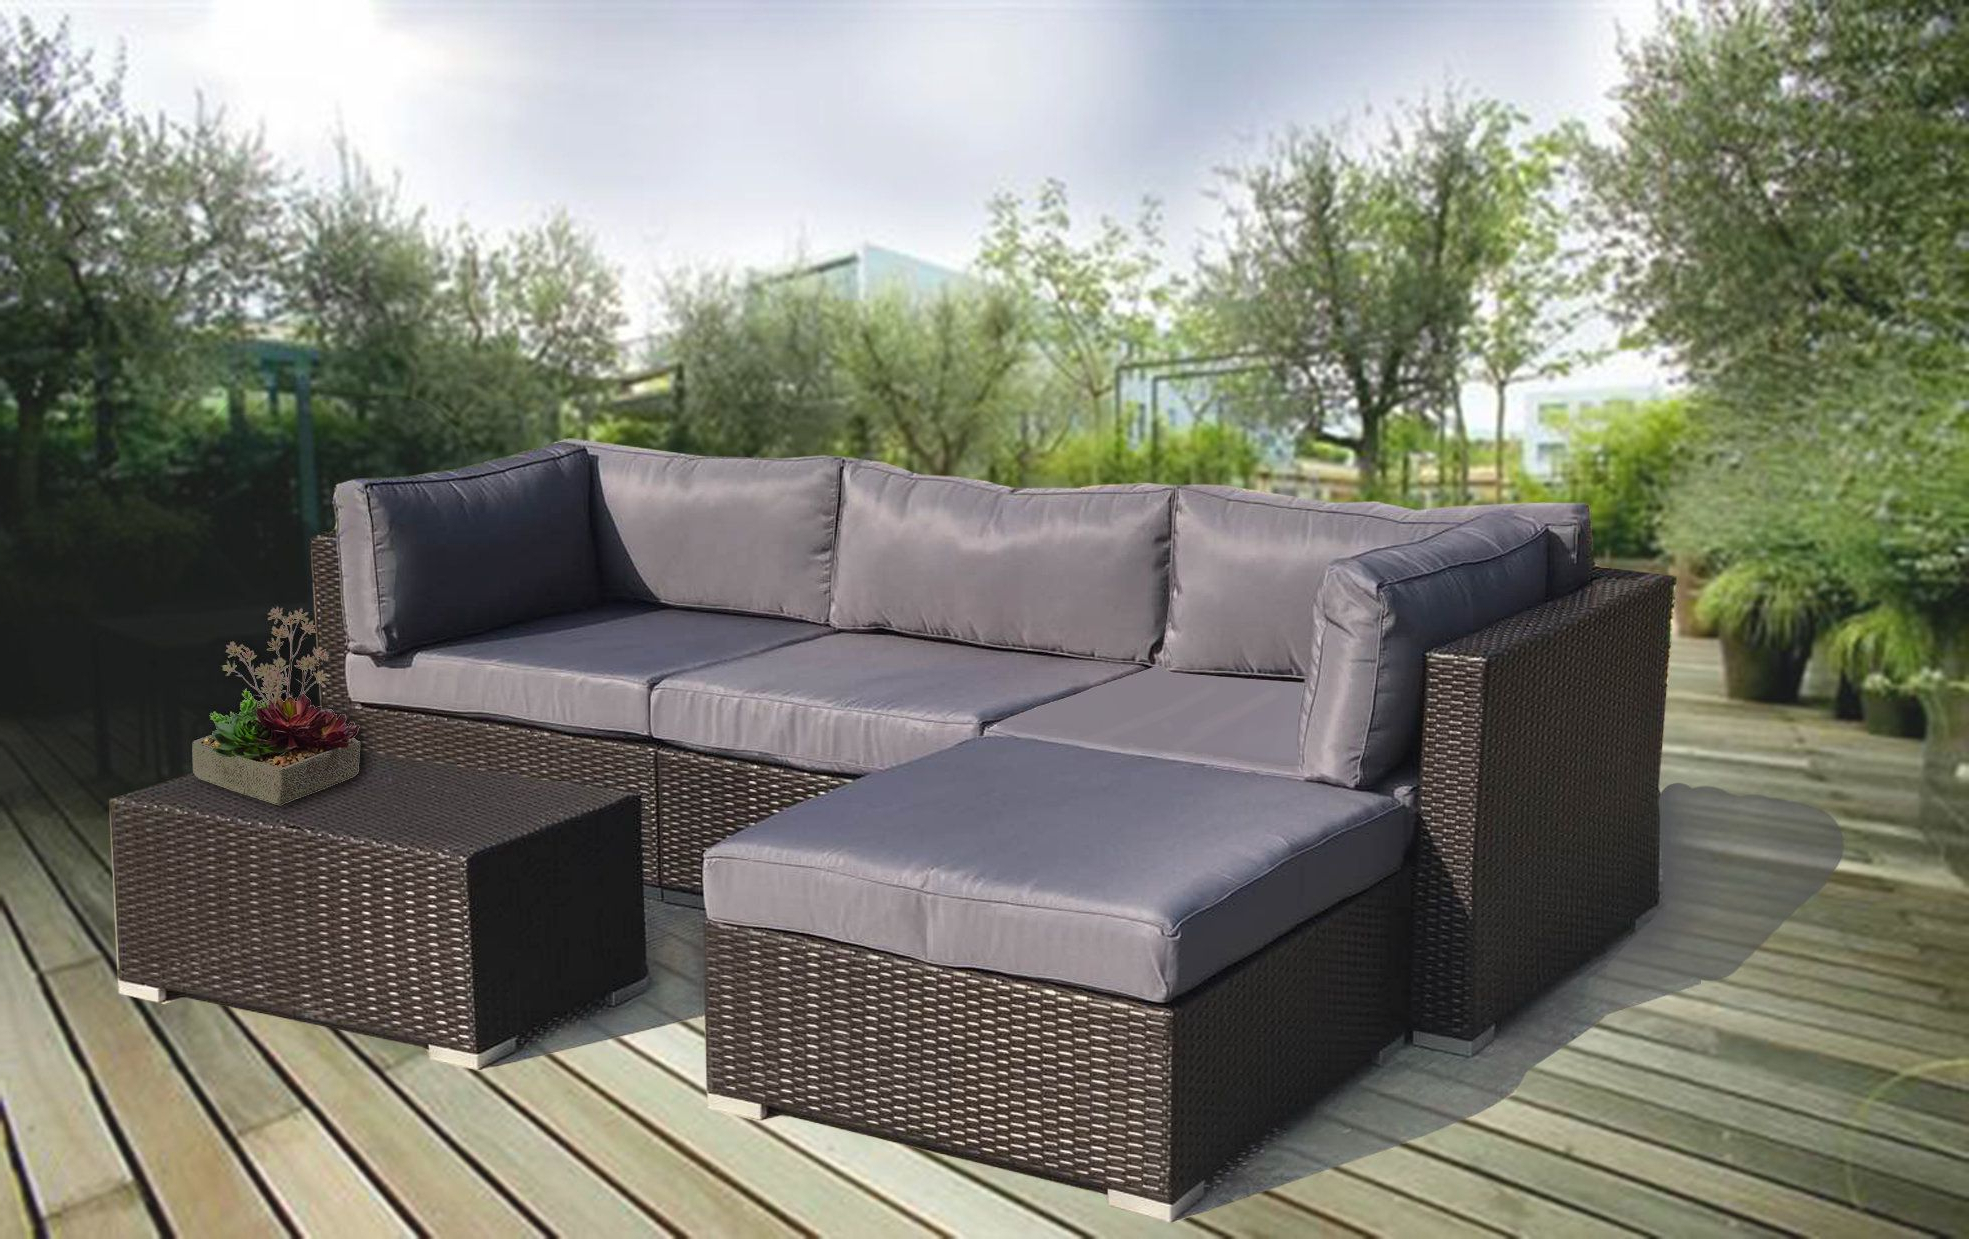 Widely Used Olinda 4 Piece Teak Sectionals Seating Group With Cushions Intended For Olinda 4 Piece Teak Sectional Seating Group With Cushions (View 16 of 25)